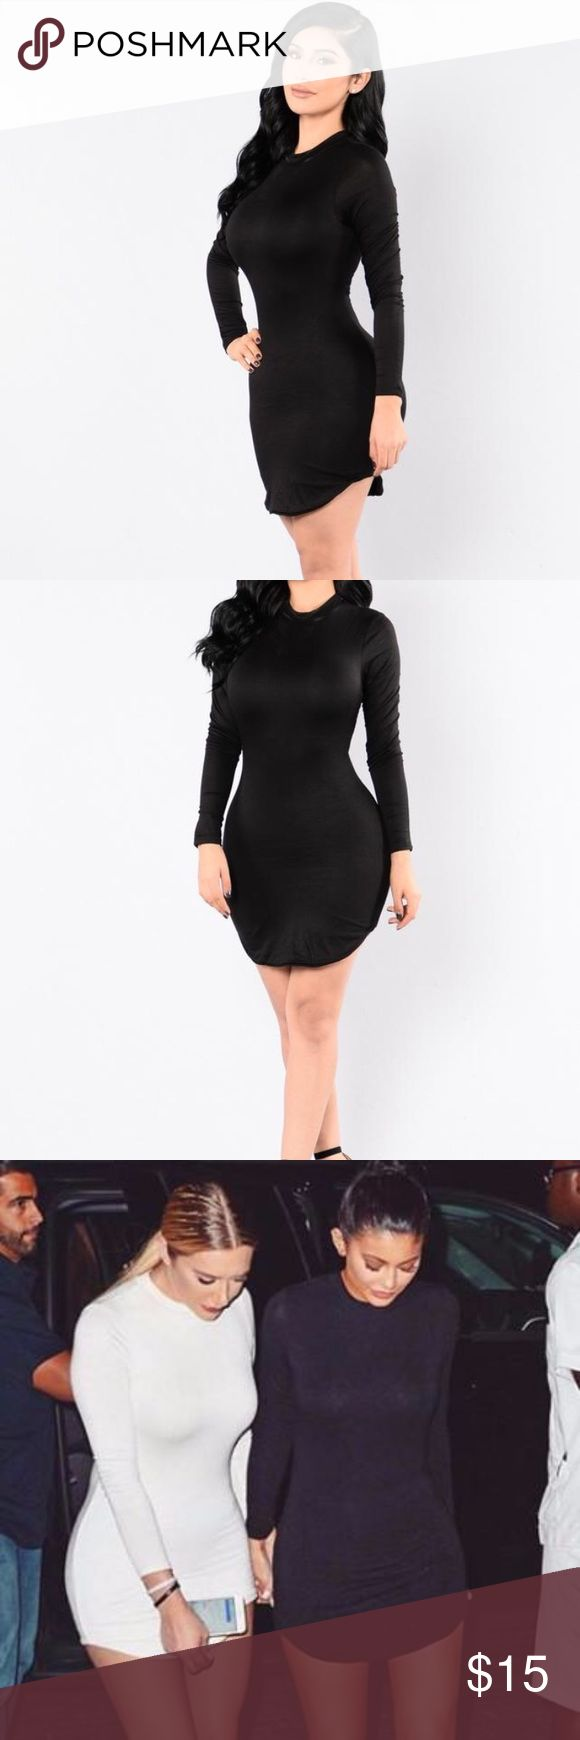 ‼️Sale‼️ Fashion Nova Black Tunic dress I only used this dress one time for two hours. This dress needs a new home. In new condition. Comfortable fit, true to size. Fashion Nova Dresses Long Sleeve